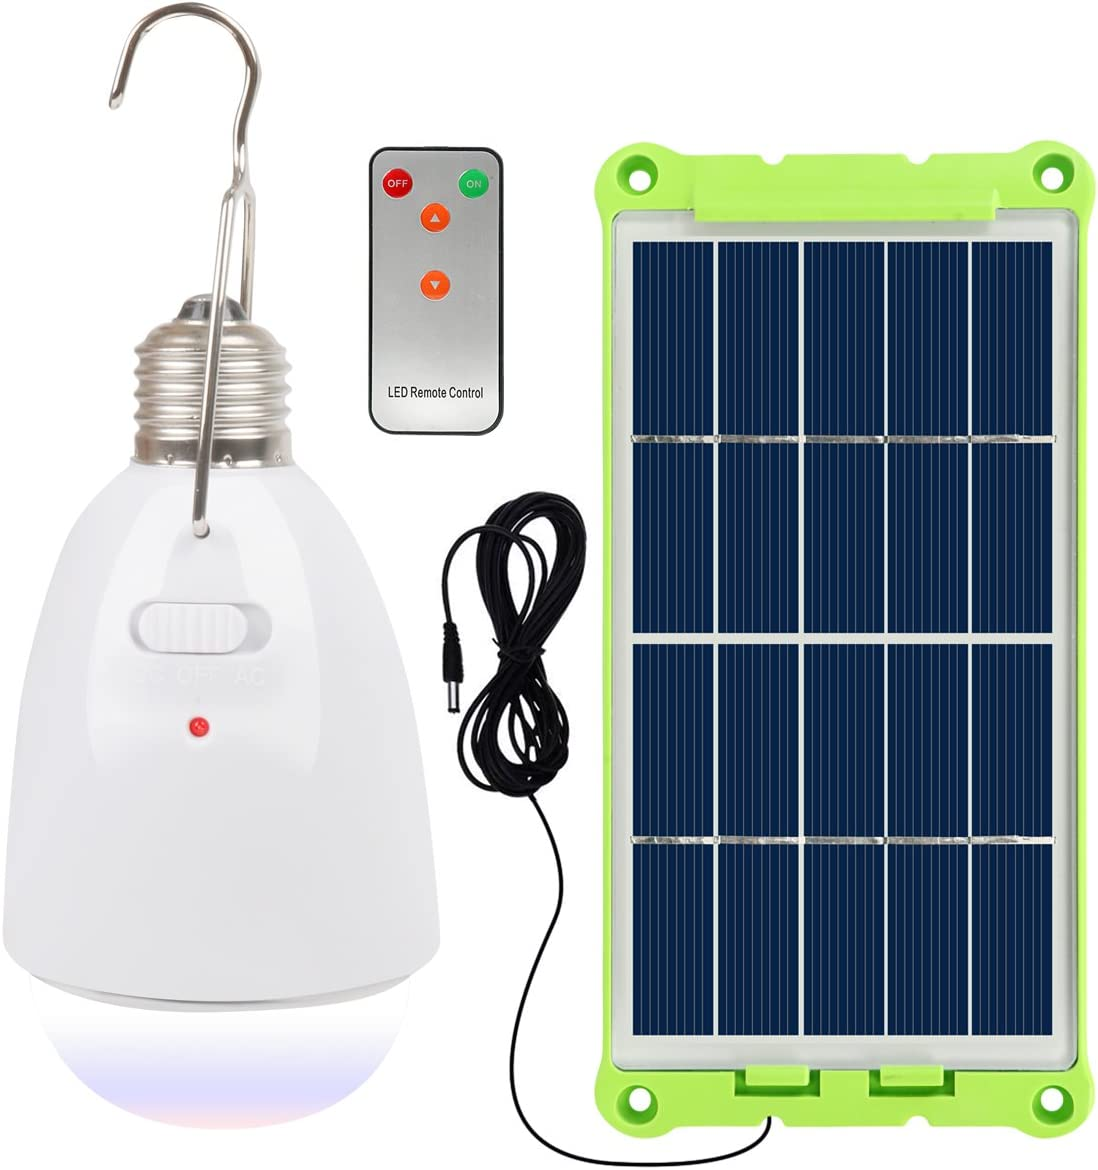 NING ZE XIN Solar Light Bulb with Solar Panel Multi-Functional Waterproof Rechargeable Remote Control Dimmable Hanging Lamp Tent Light Protable Lighting for Home, Camping, Power Outage, Emergency